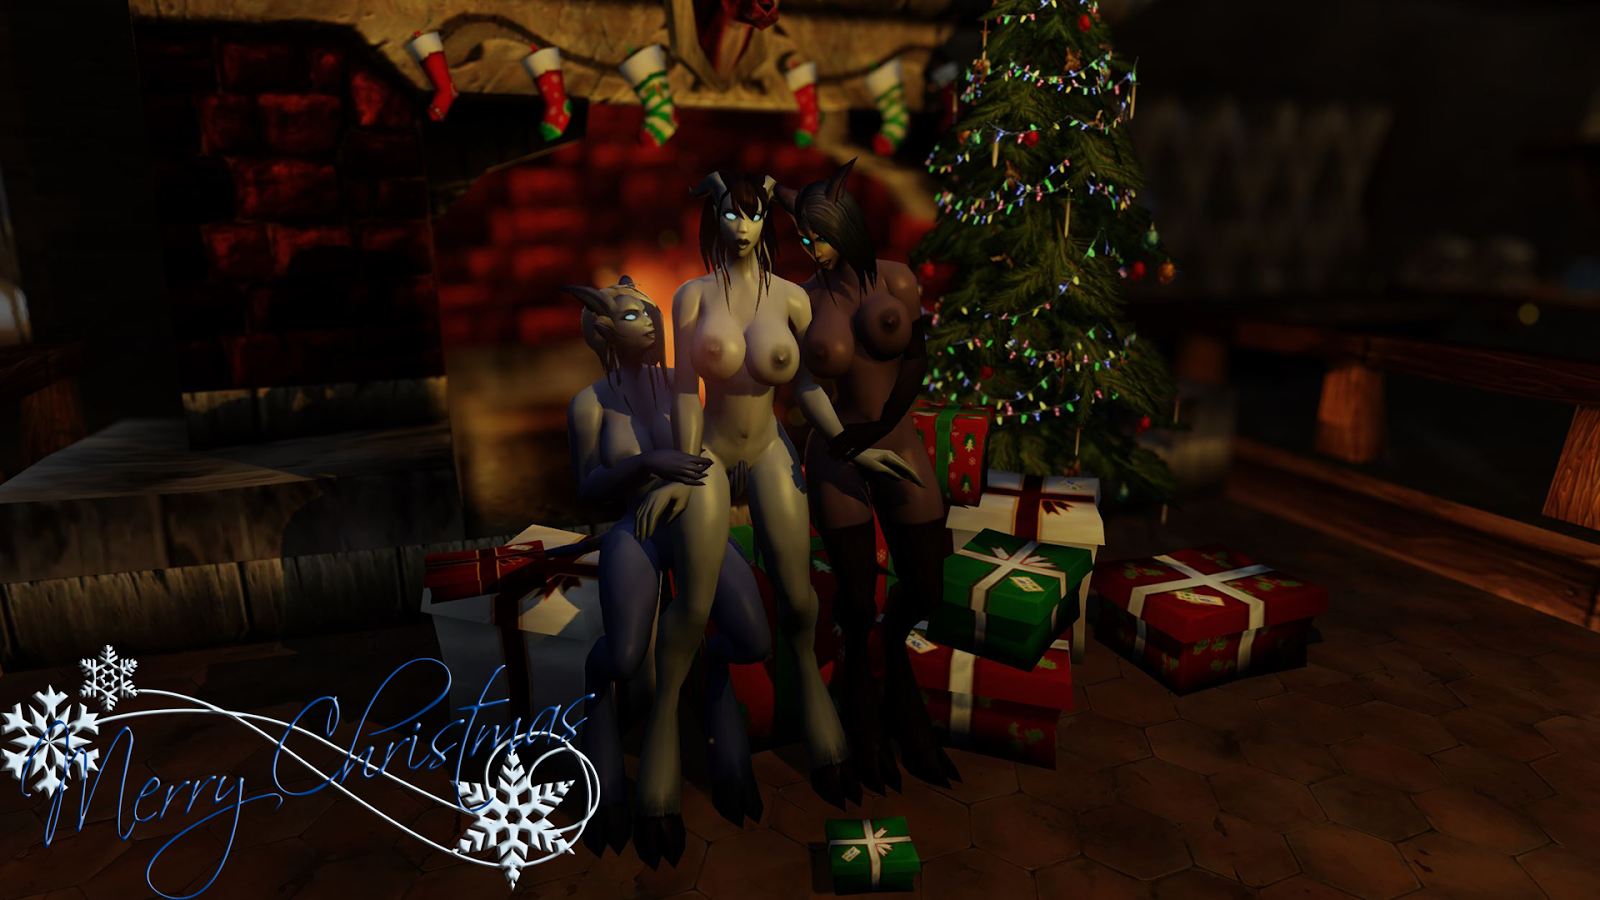 Quest xmas whorecraft nudes photos